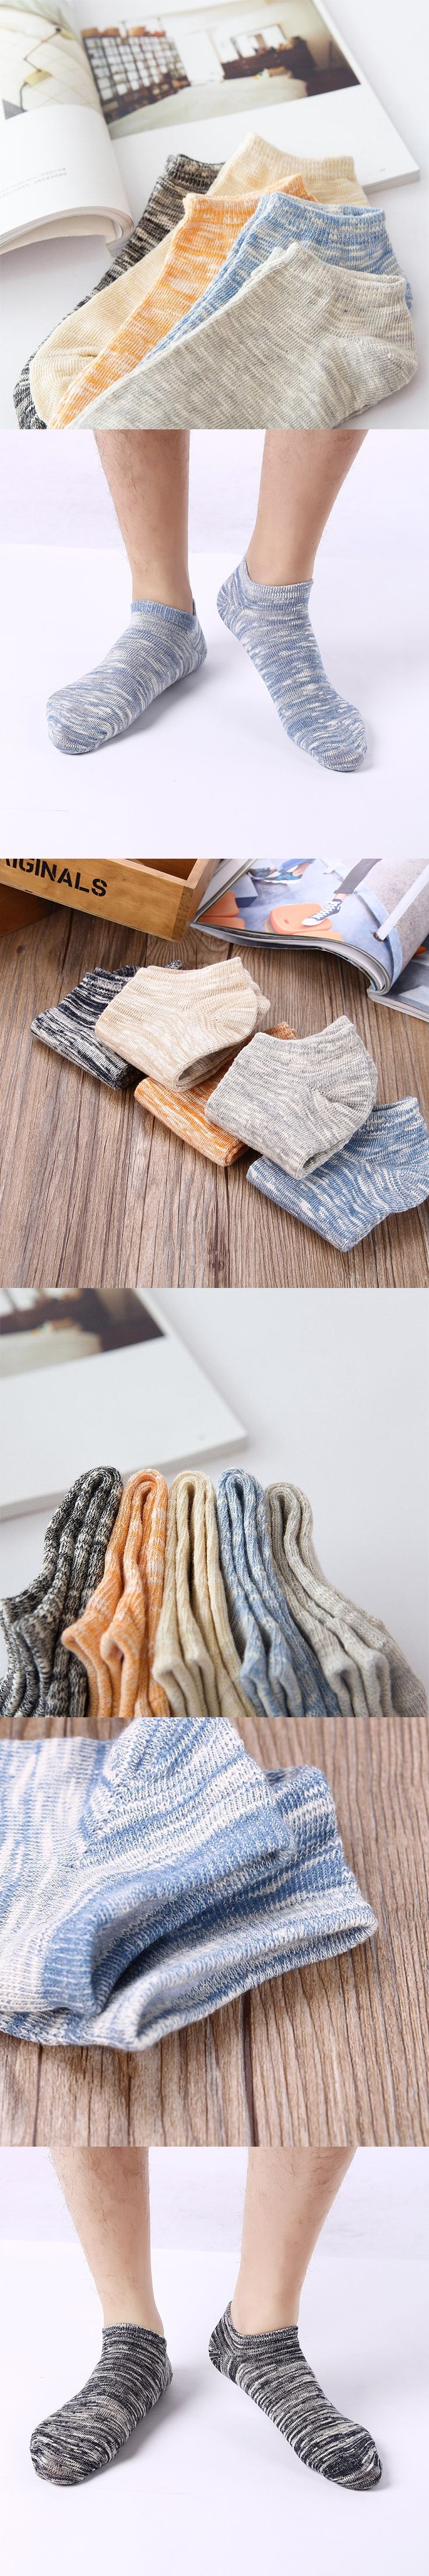 Men's Short Socks EUR 37-43 Fashion Invisible Comfortable Knit Cotton Breathable Casual Mixed Colors Male Socks